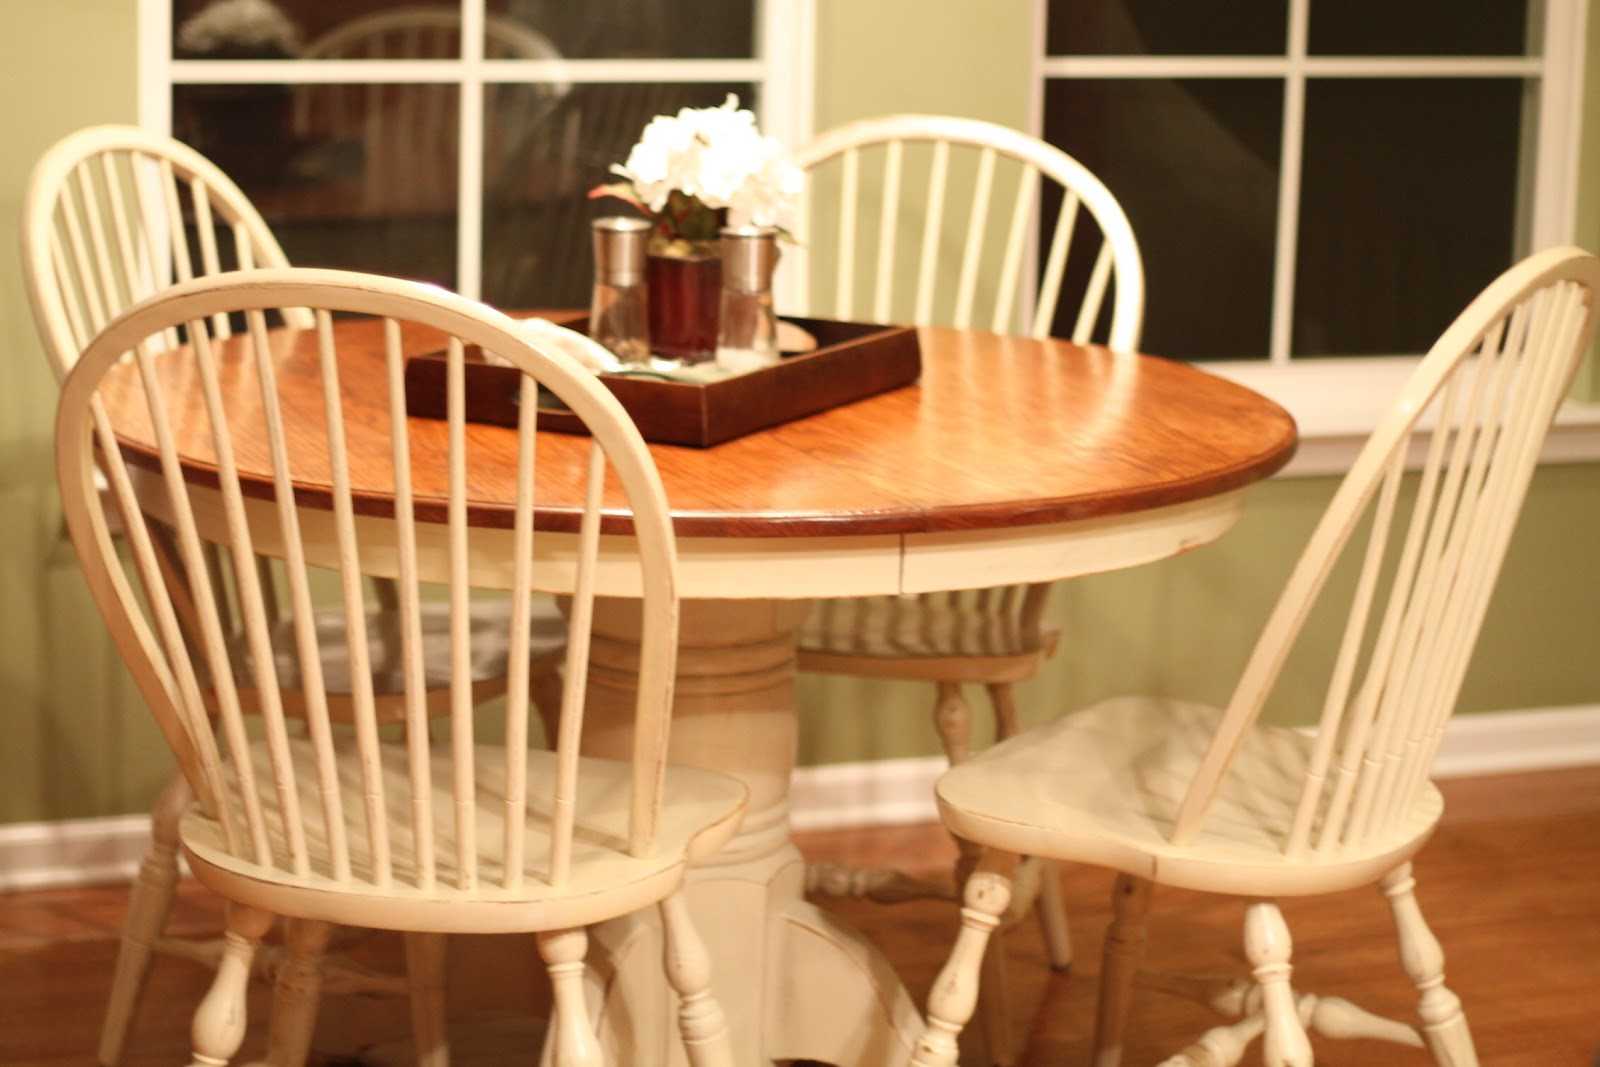 Notes from Kristen: Refinished Kitchen Table